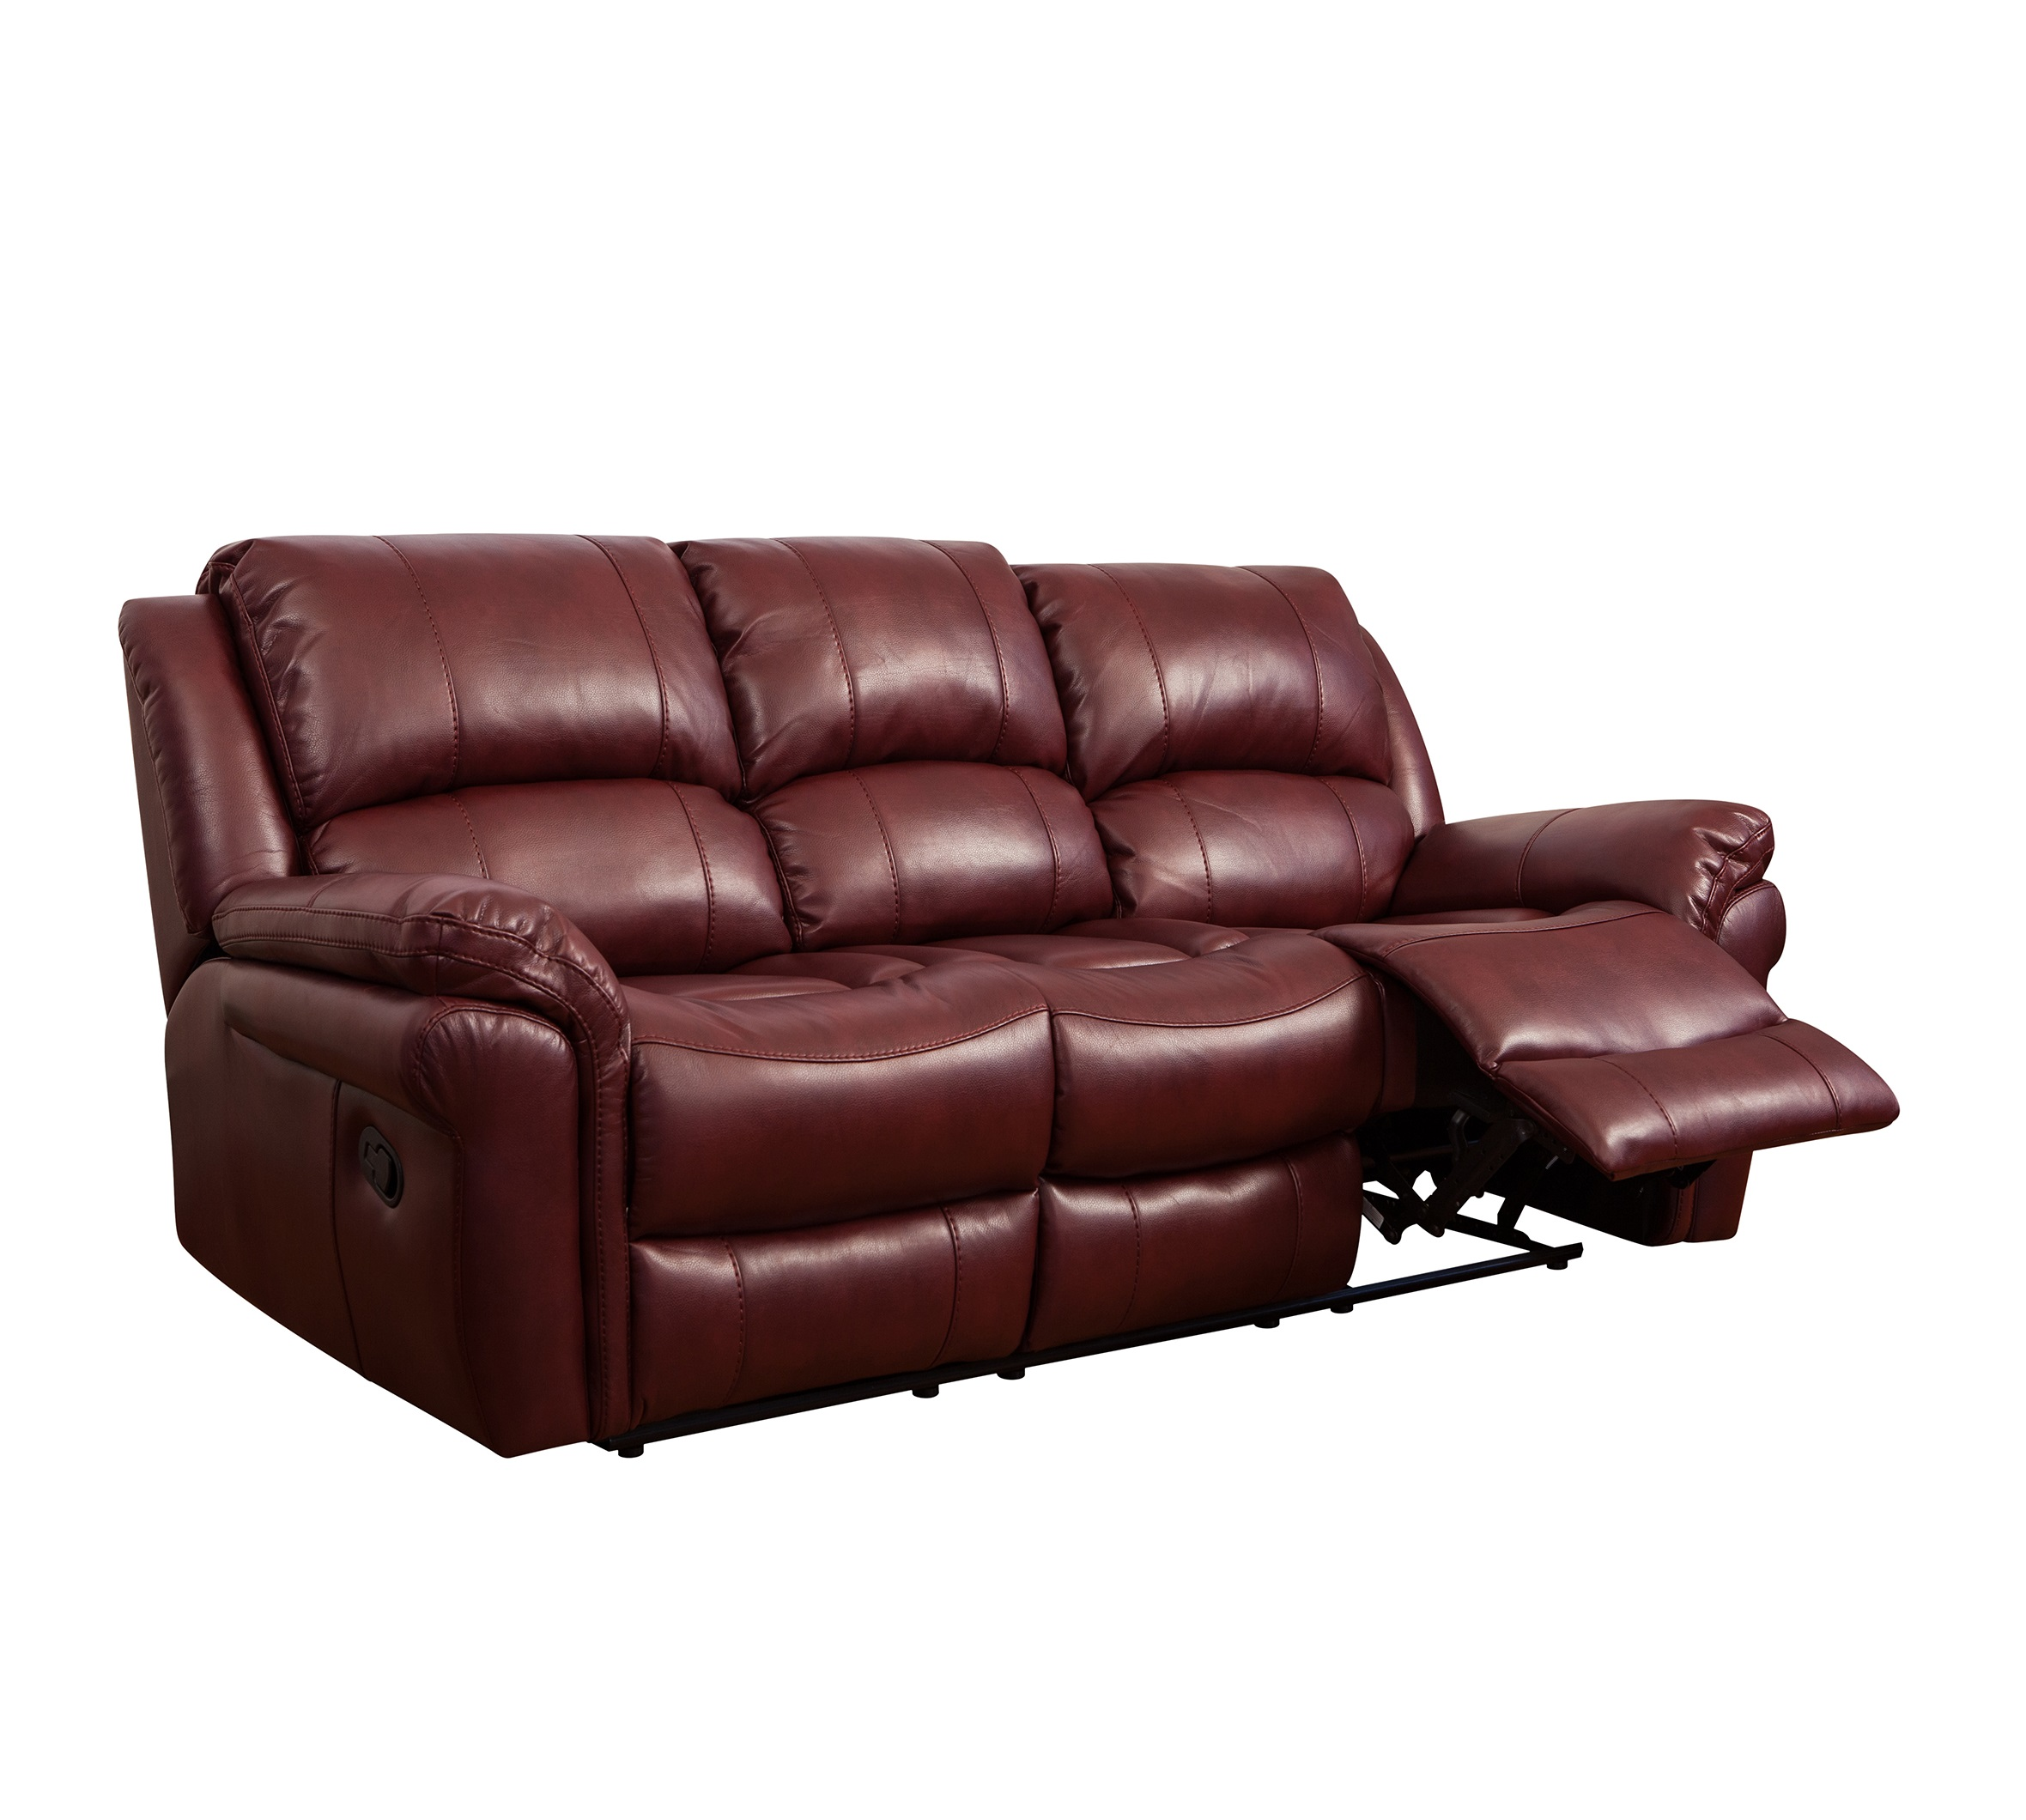 Modern American Style Furniture Rocker Functional Leather Recliner Sofa